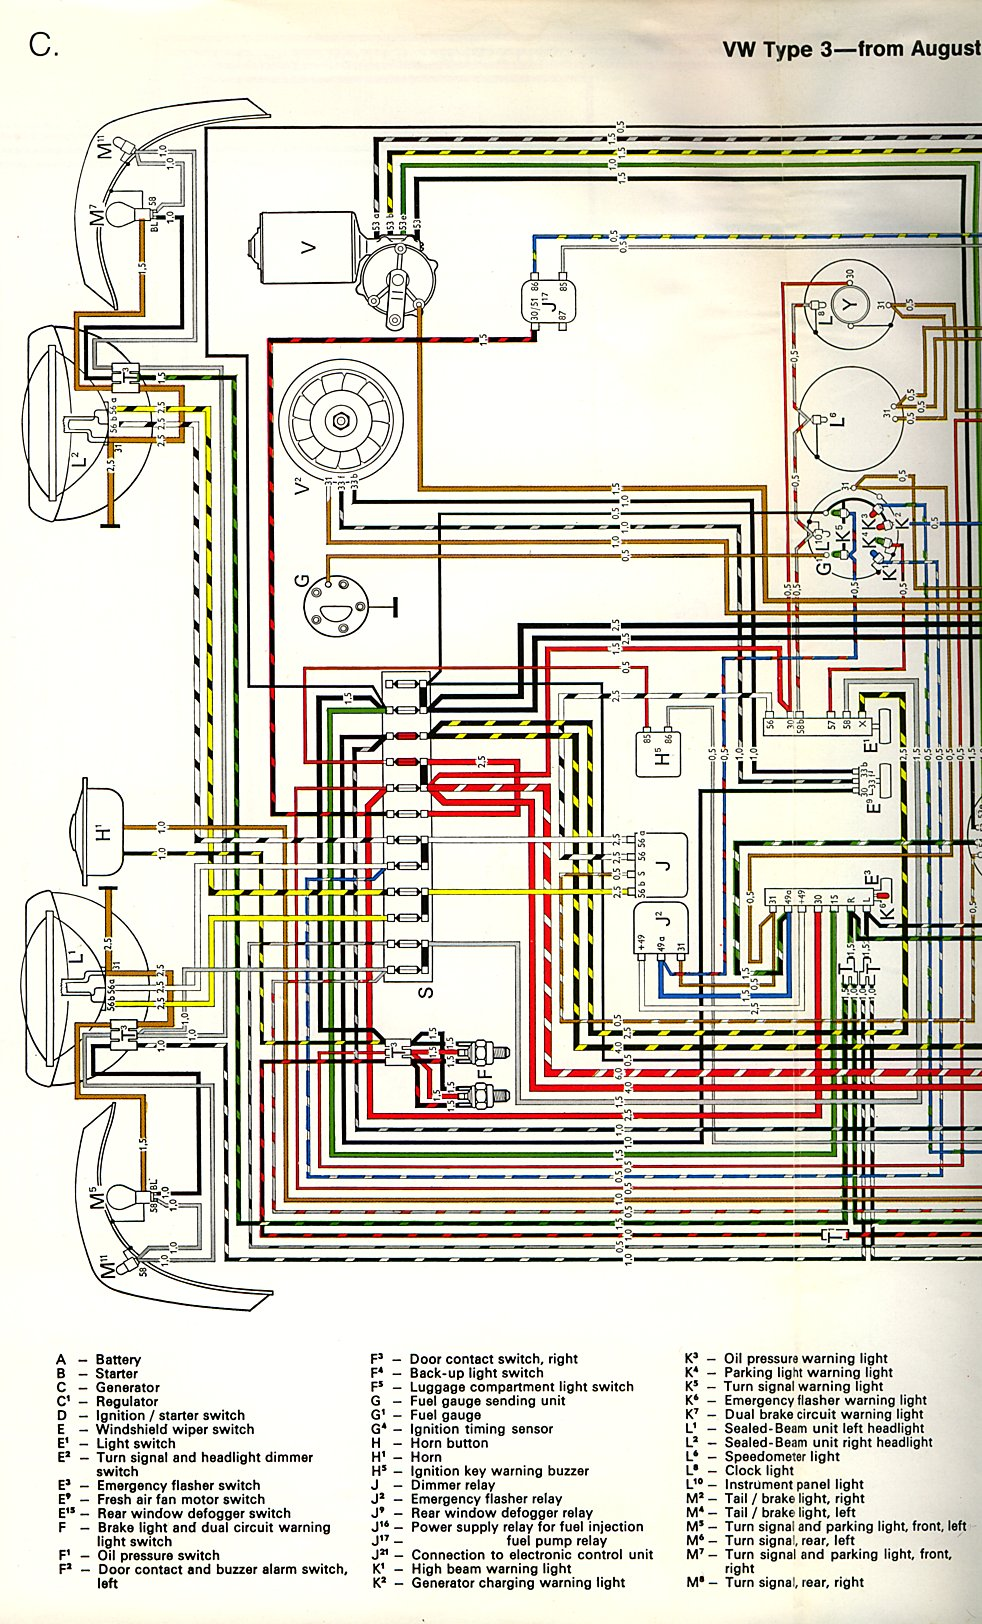 vw 1600 engine wiring diagram wiring diagrams and schematics 1974 volkswagen beetle schematic image about wiring